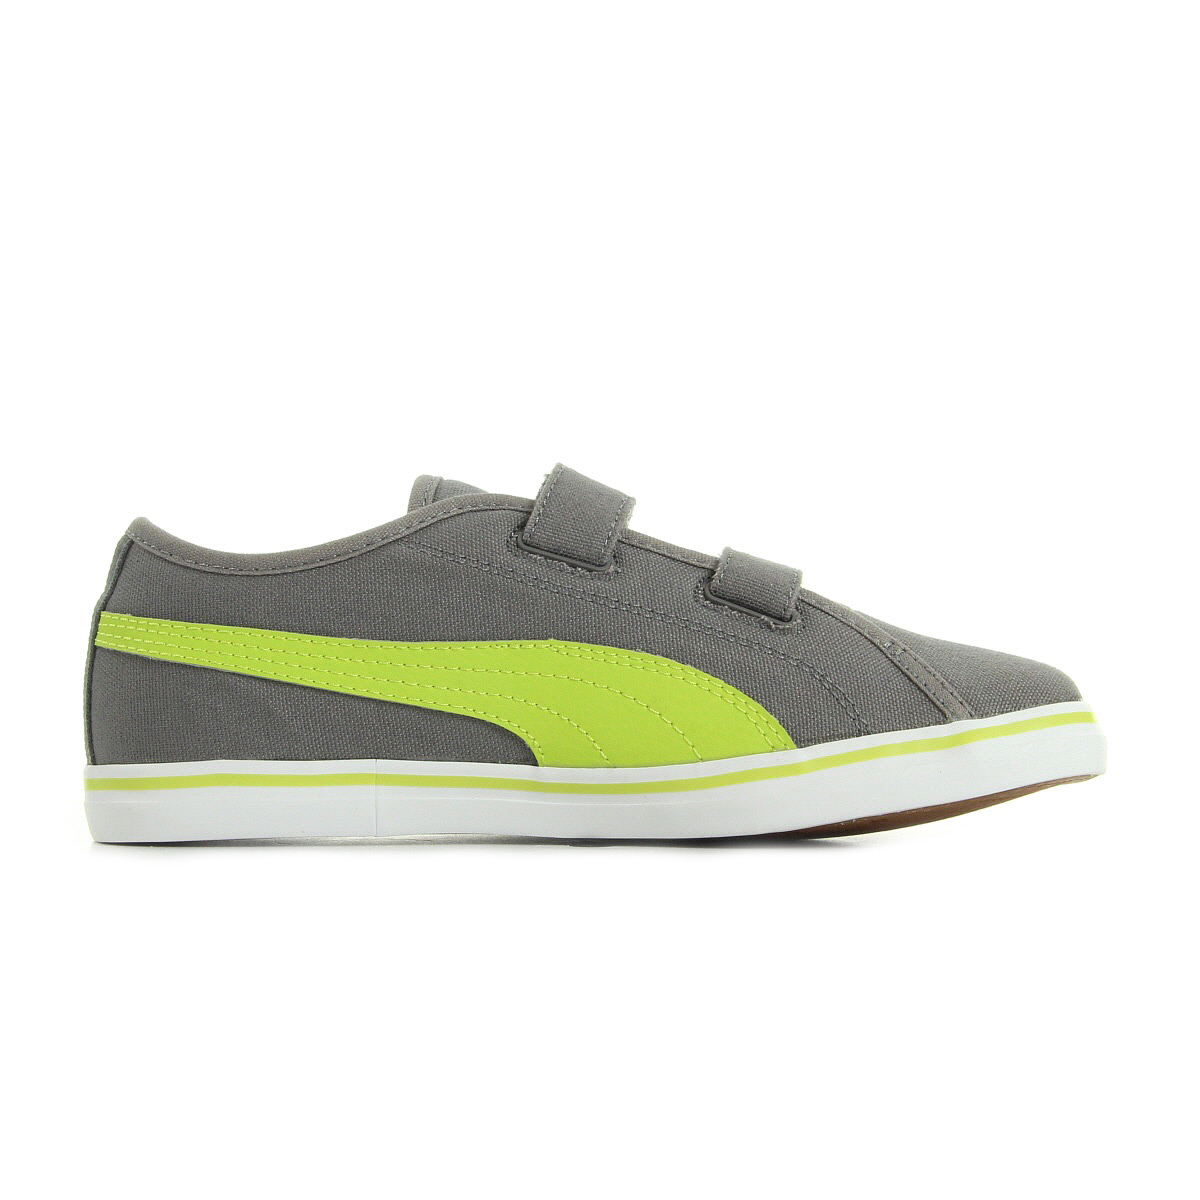 puma elsu v2 cv v kids 35985001  baskets mode gar u00e7on